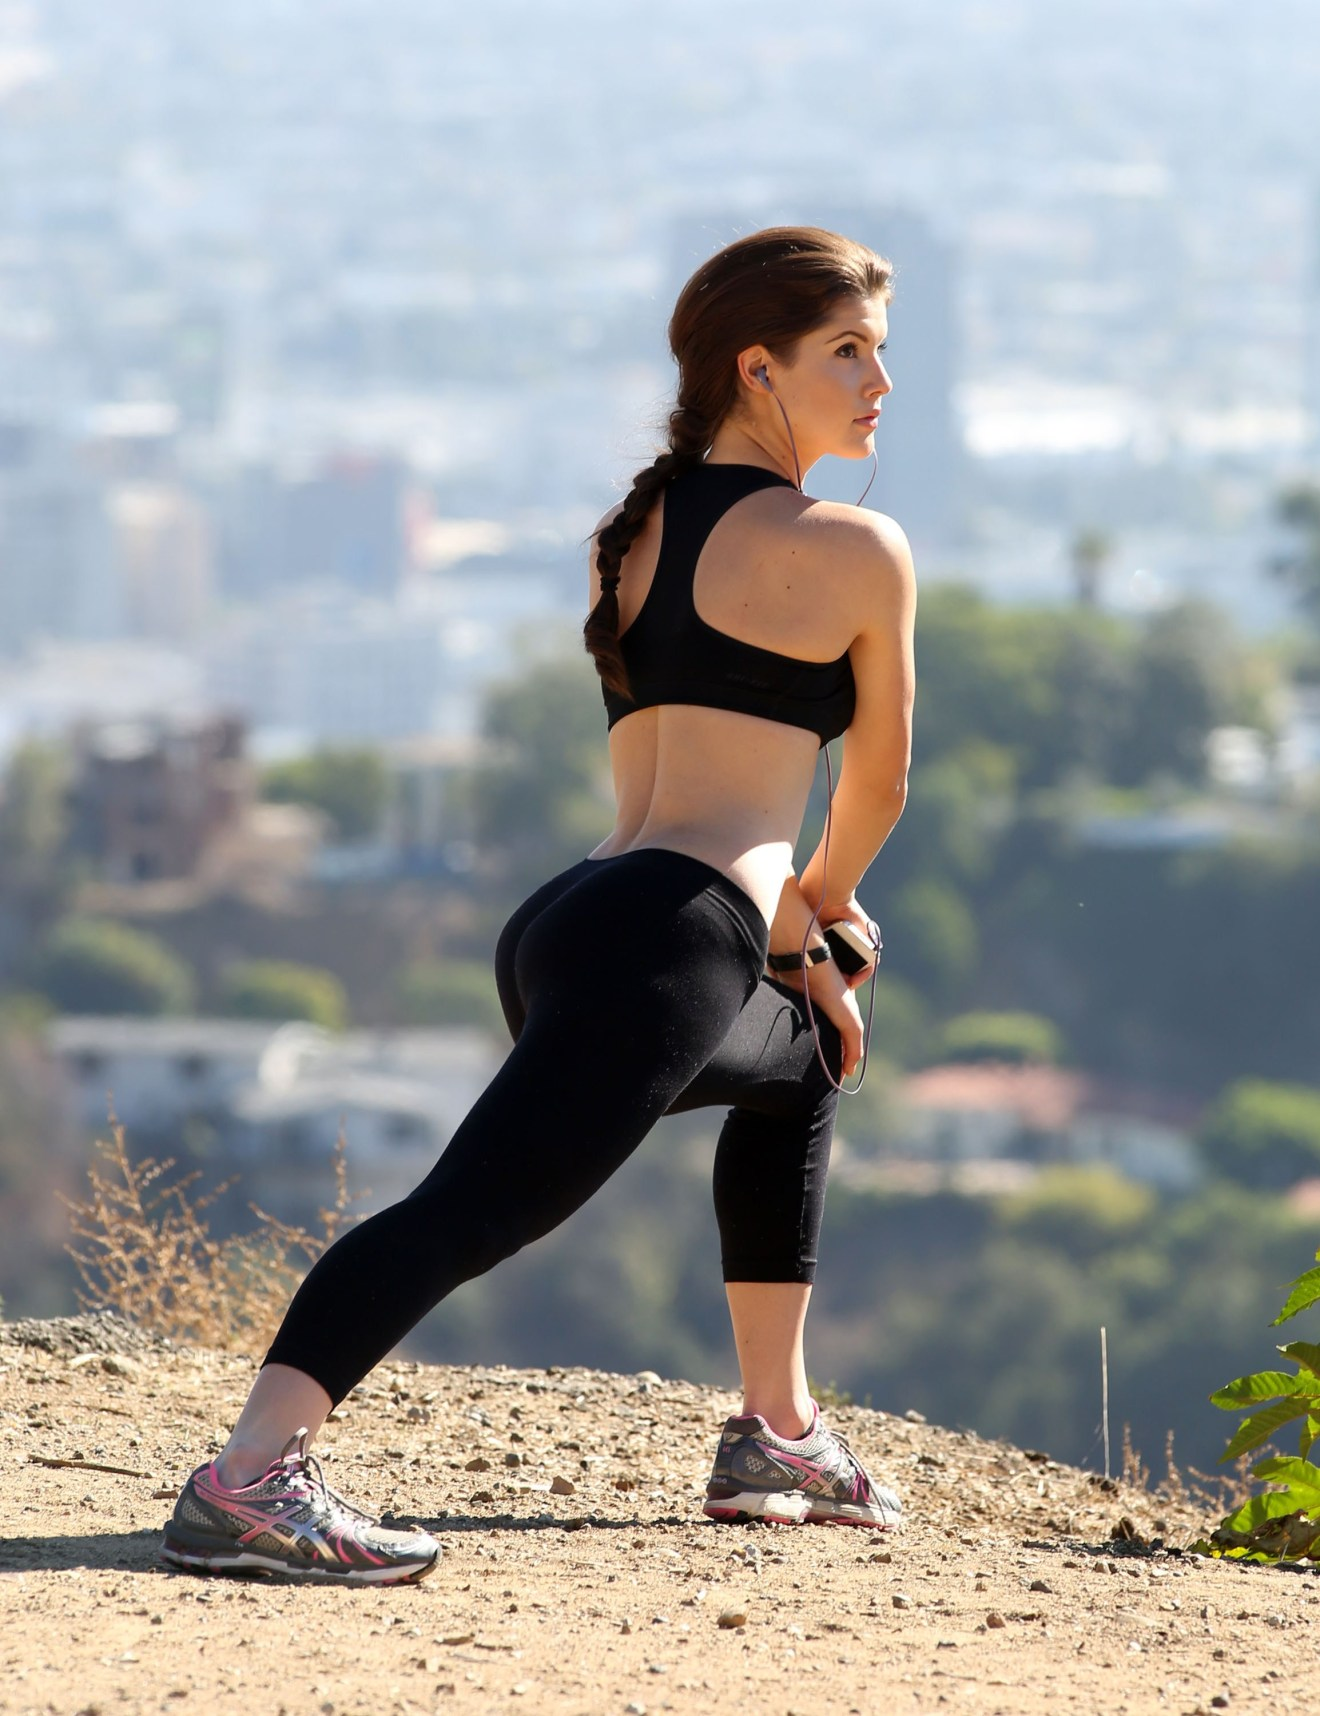 Amanda Cerny Centerfold amanda cerny diet and workouts – everything you need to know